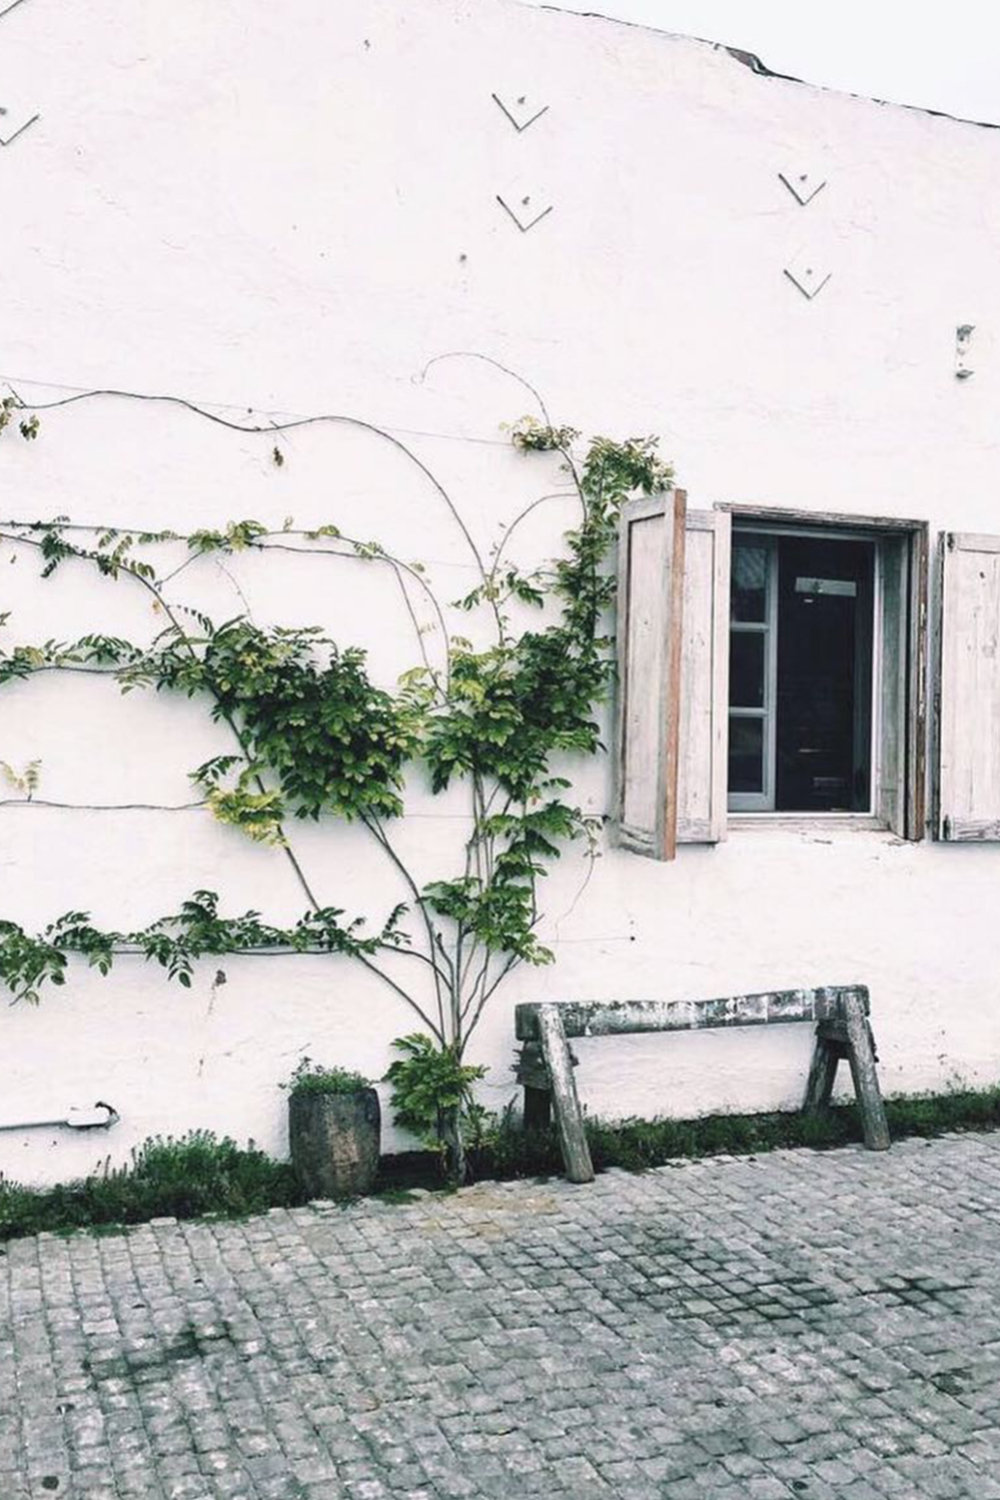 Outdoor Patio / Vines Growing on Wall / Rustic Storefront / Kelly Fiance Creative